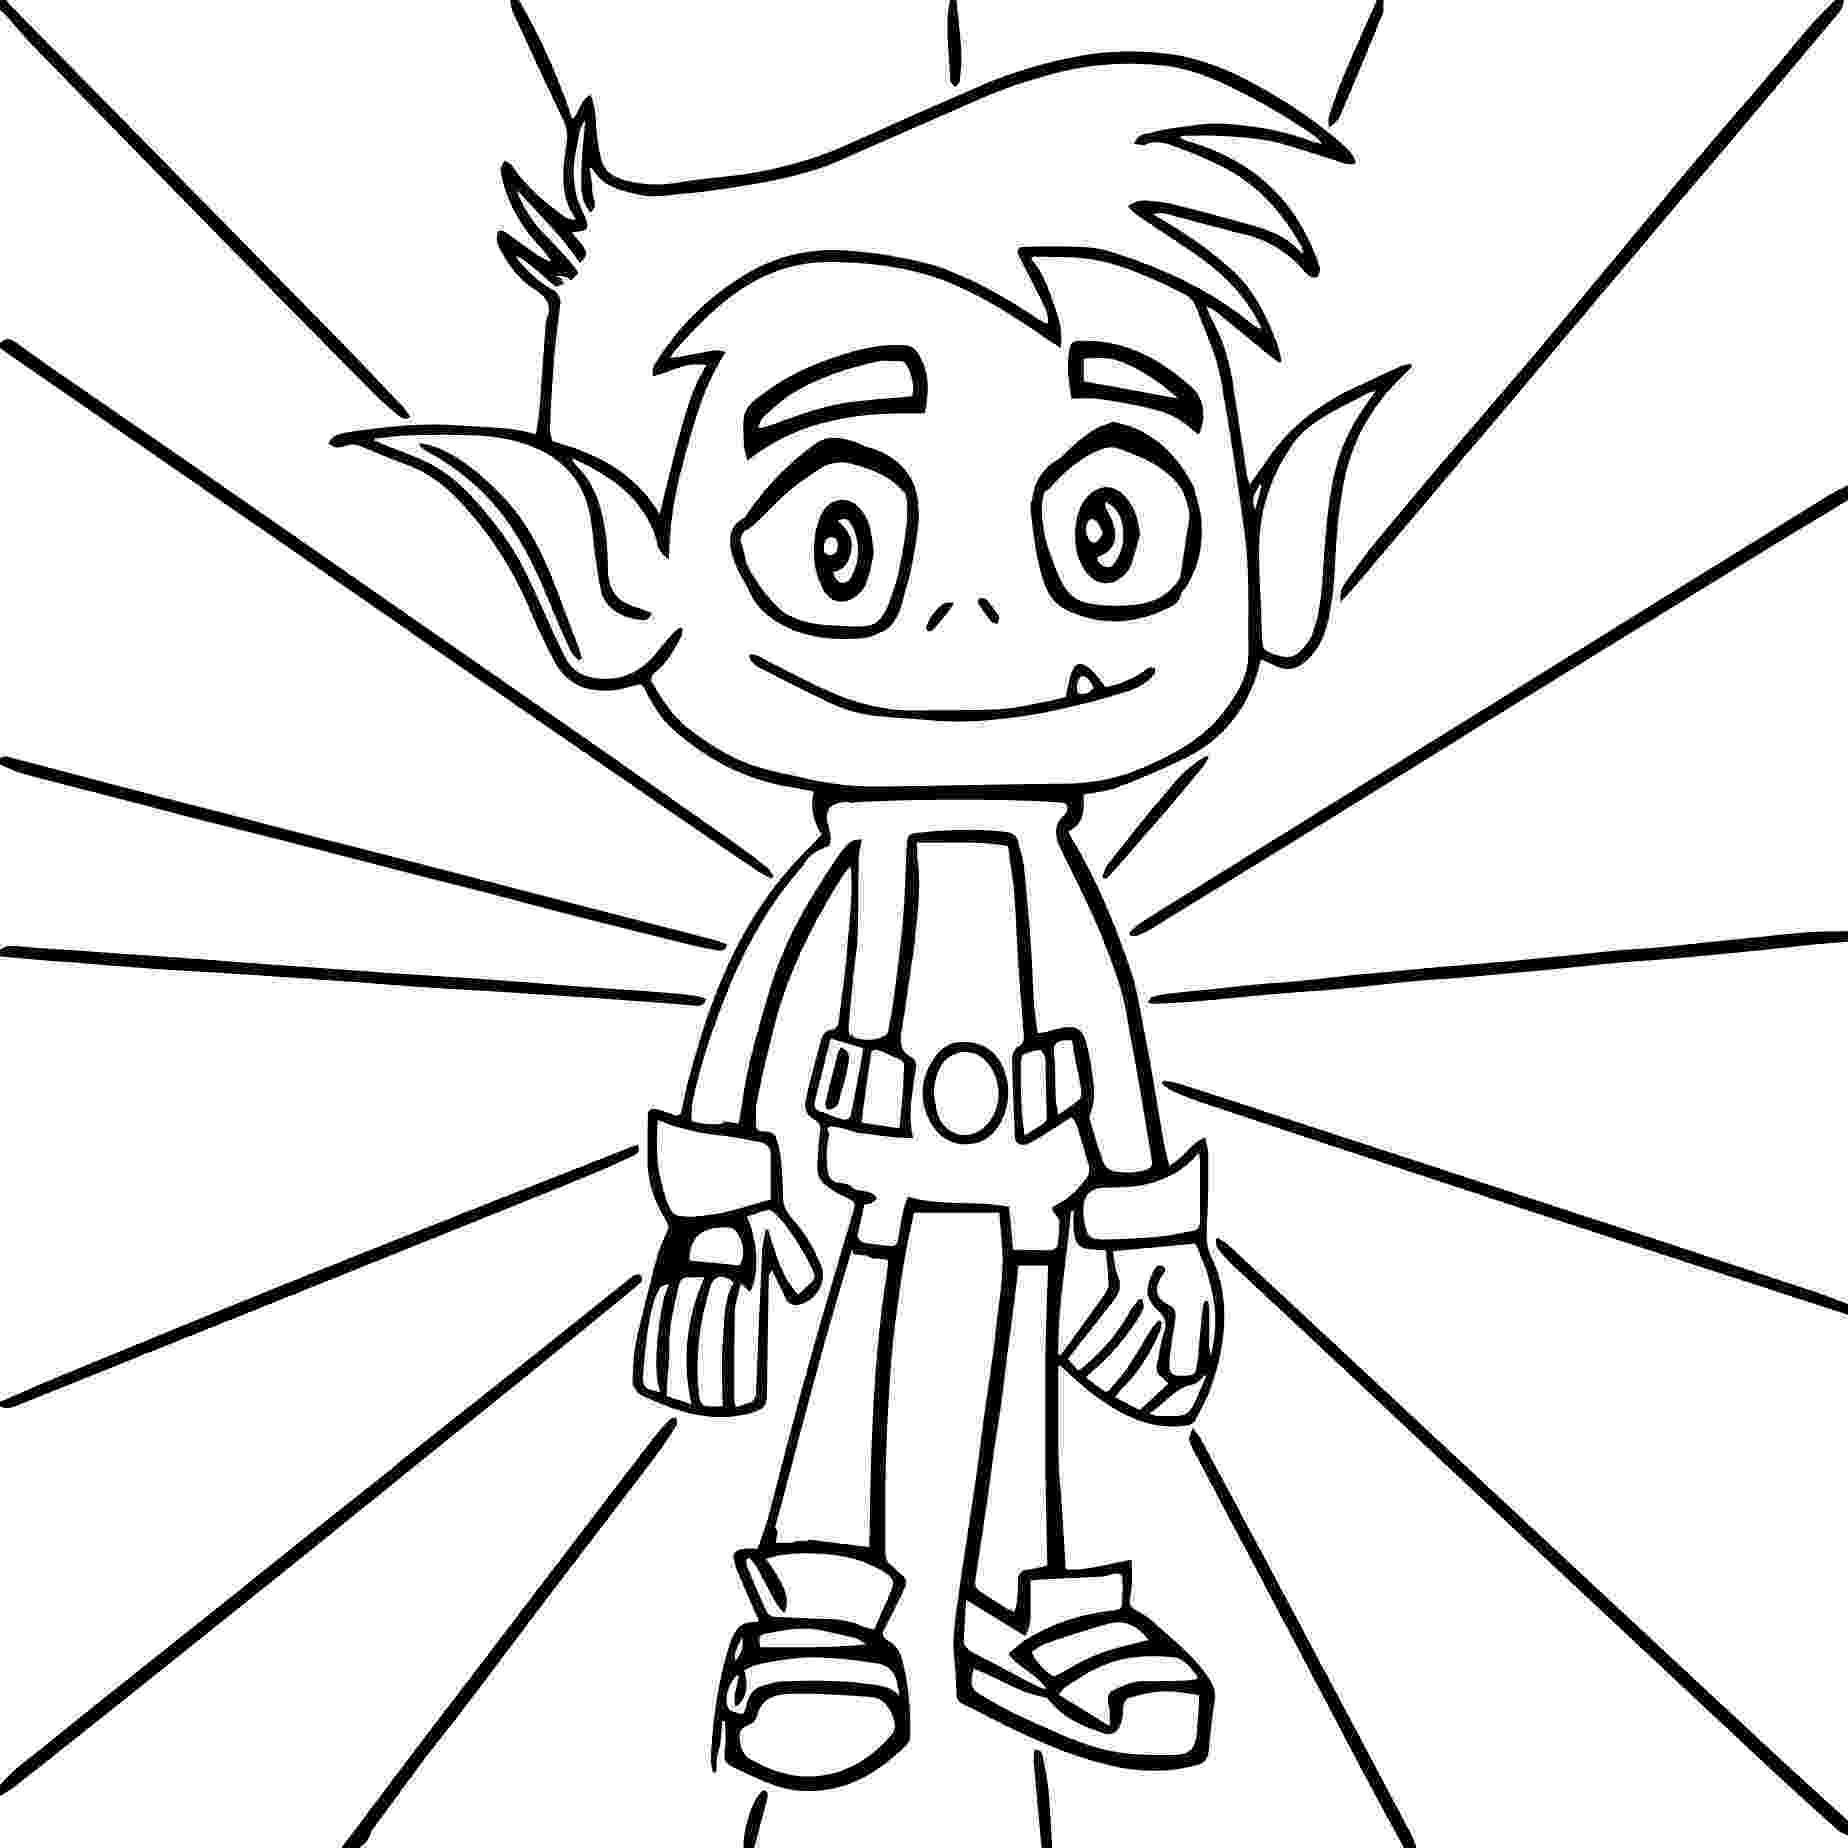 teen boy coloring pages coloring pages for teen boys coloring home pages teen boy coloring